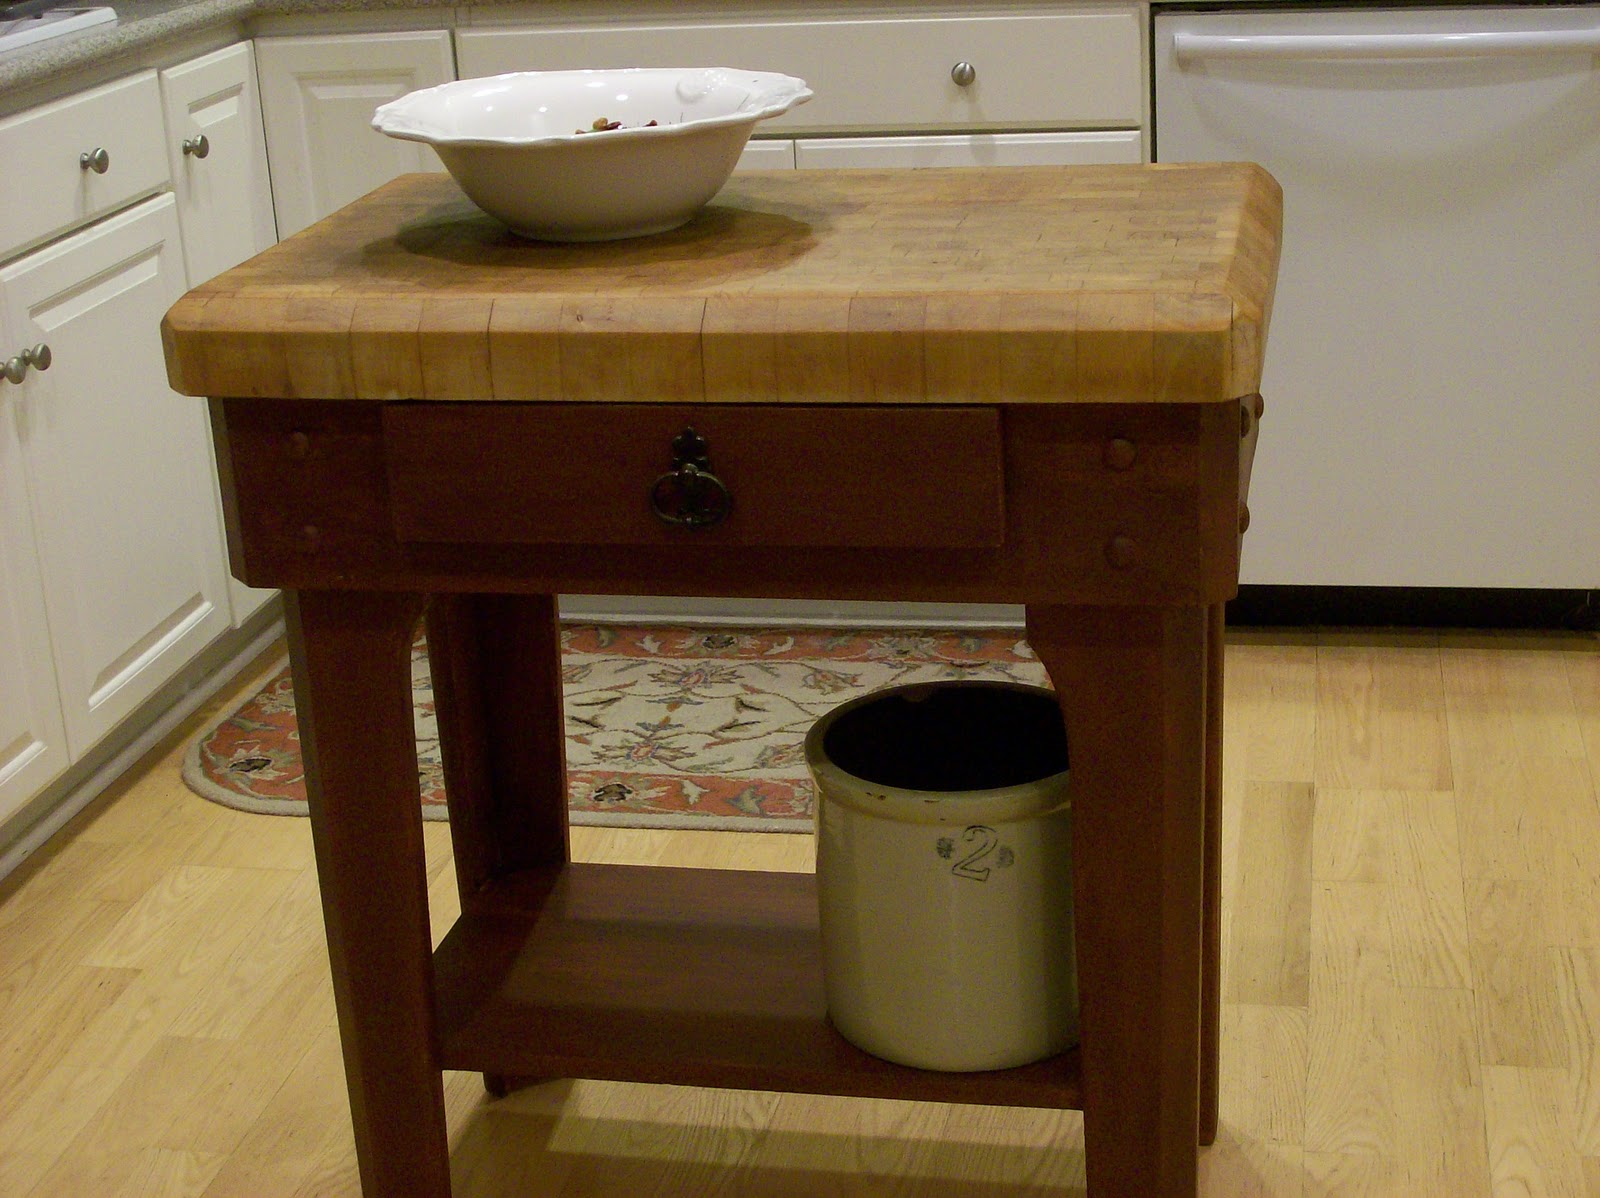 Butcher Block Red Kitchen Island : The butcher block kitchen island....it's for keeps